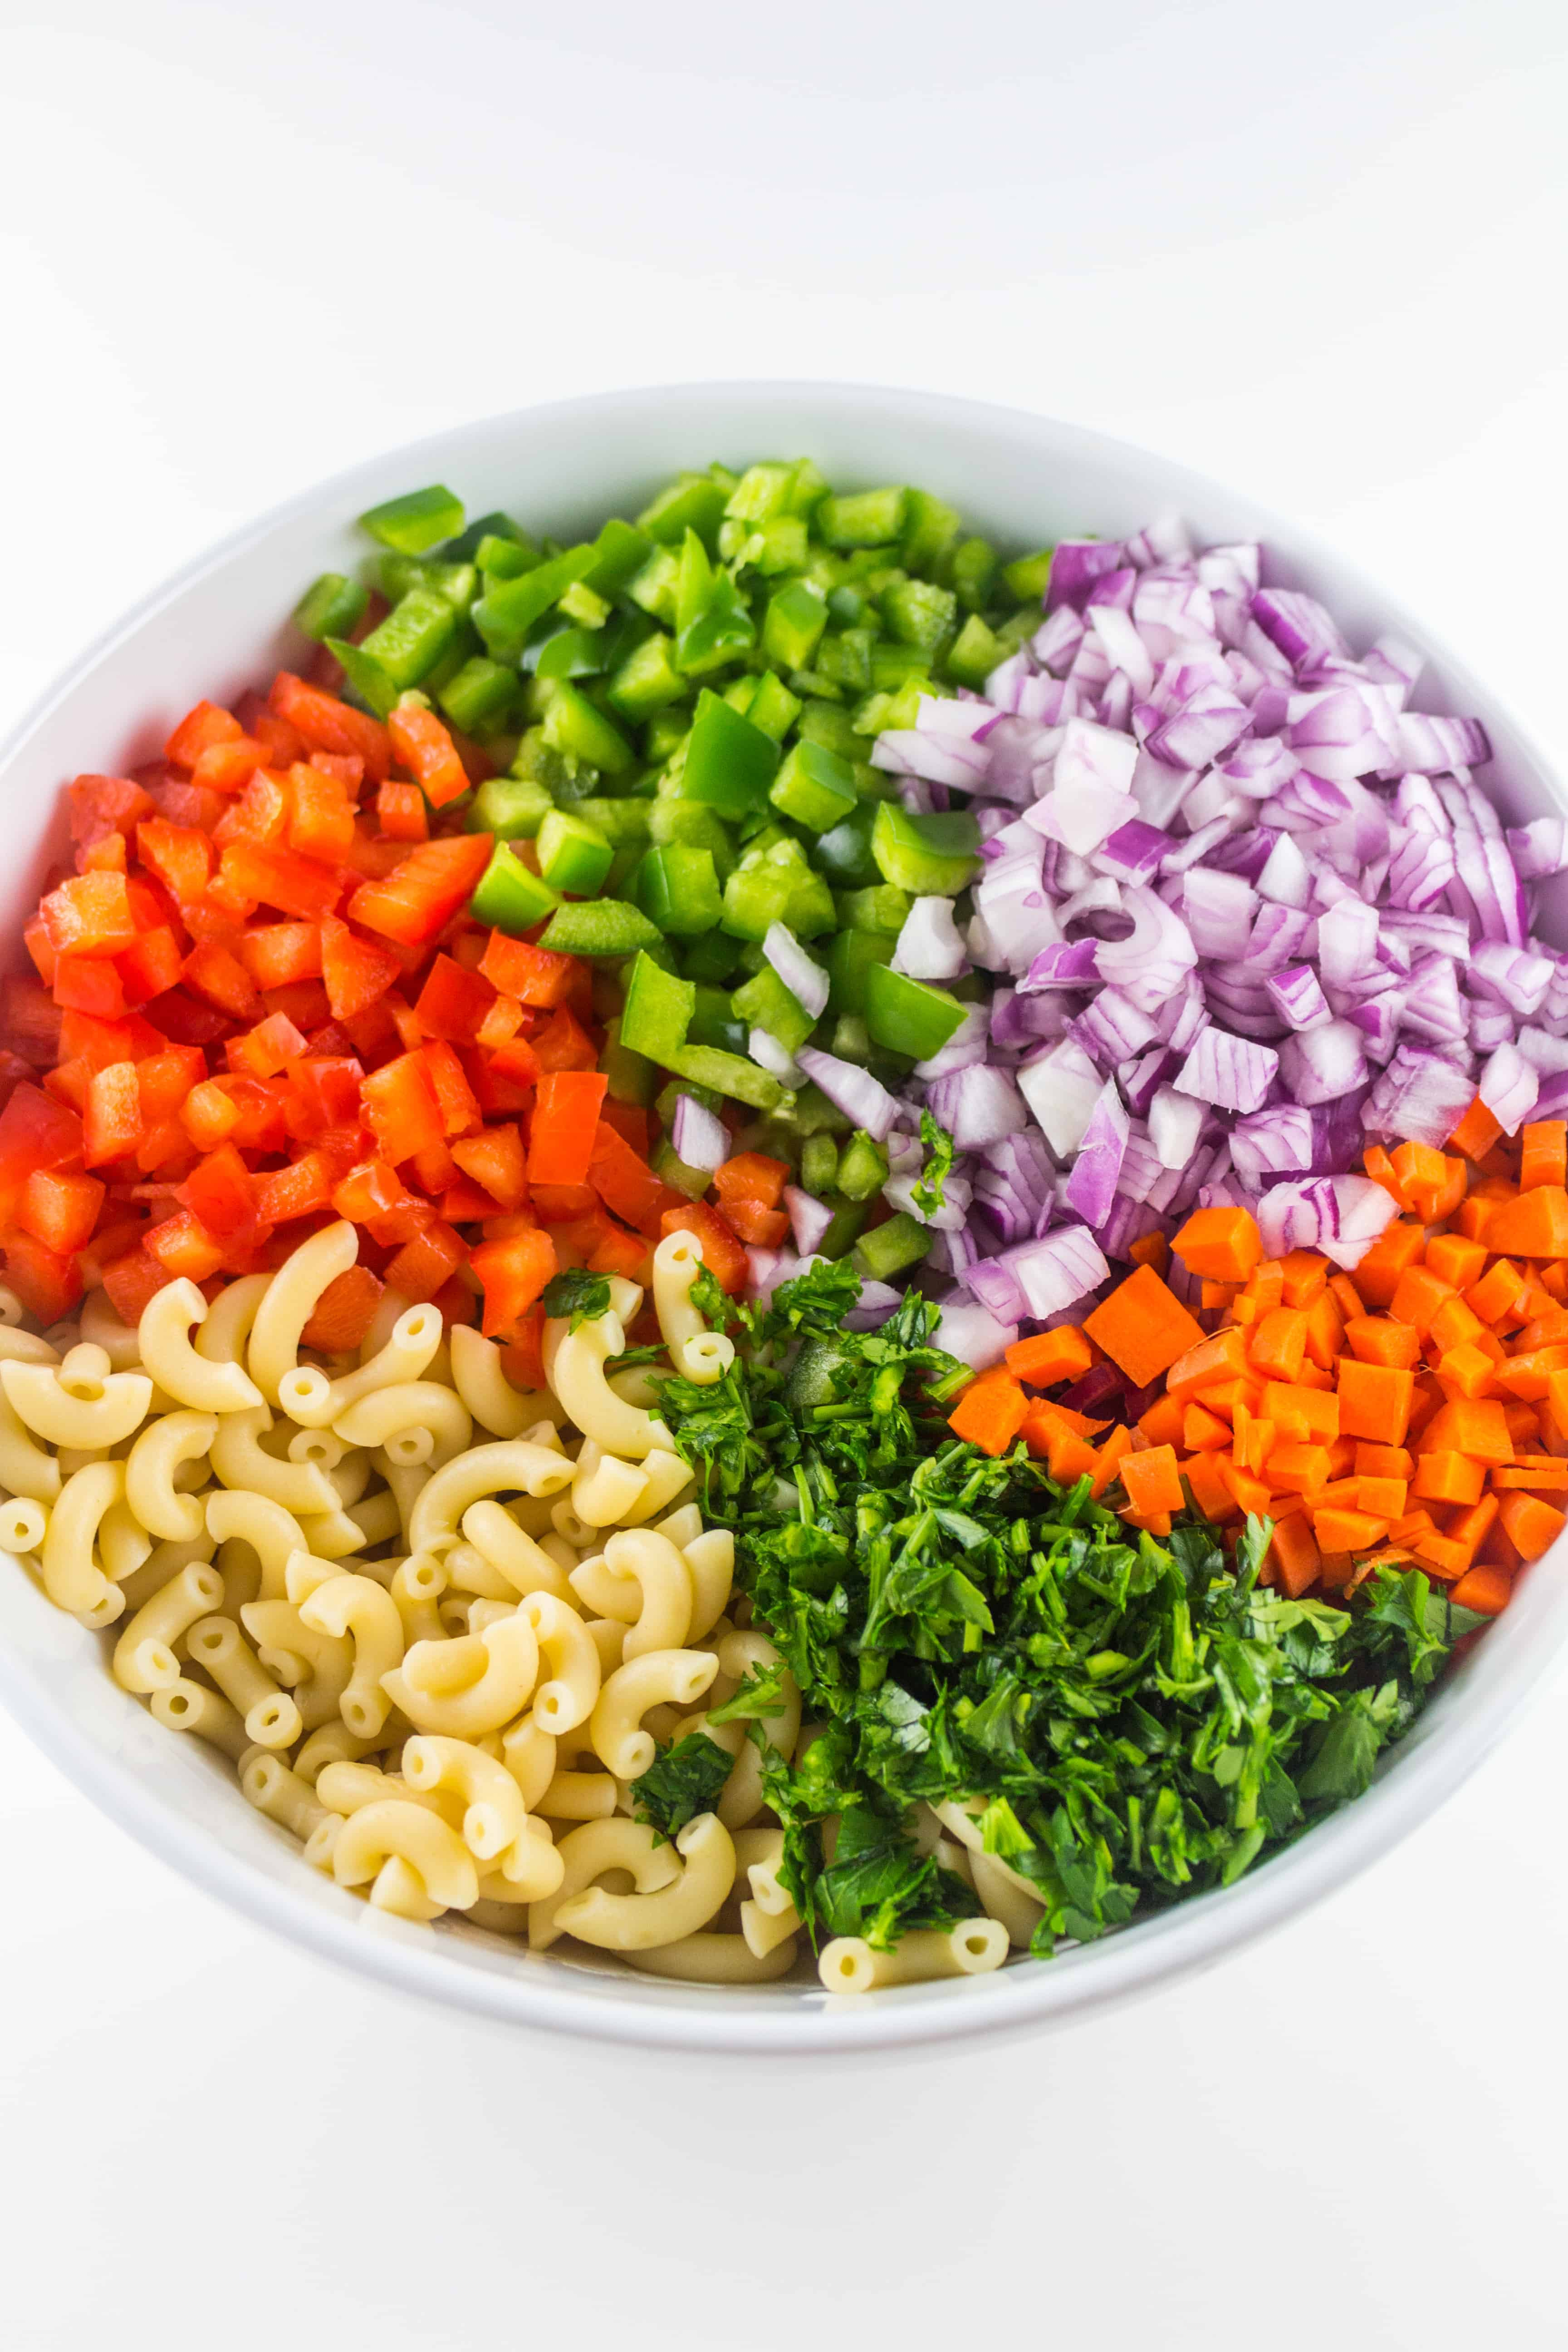 macaroni salad ingredients in a bowl